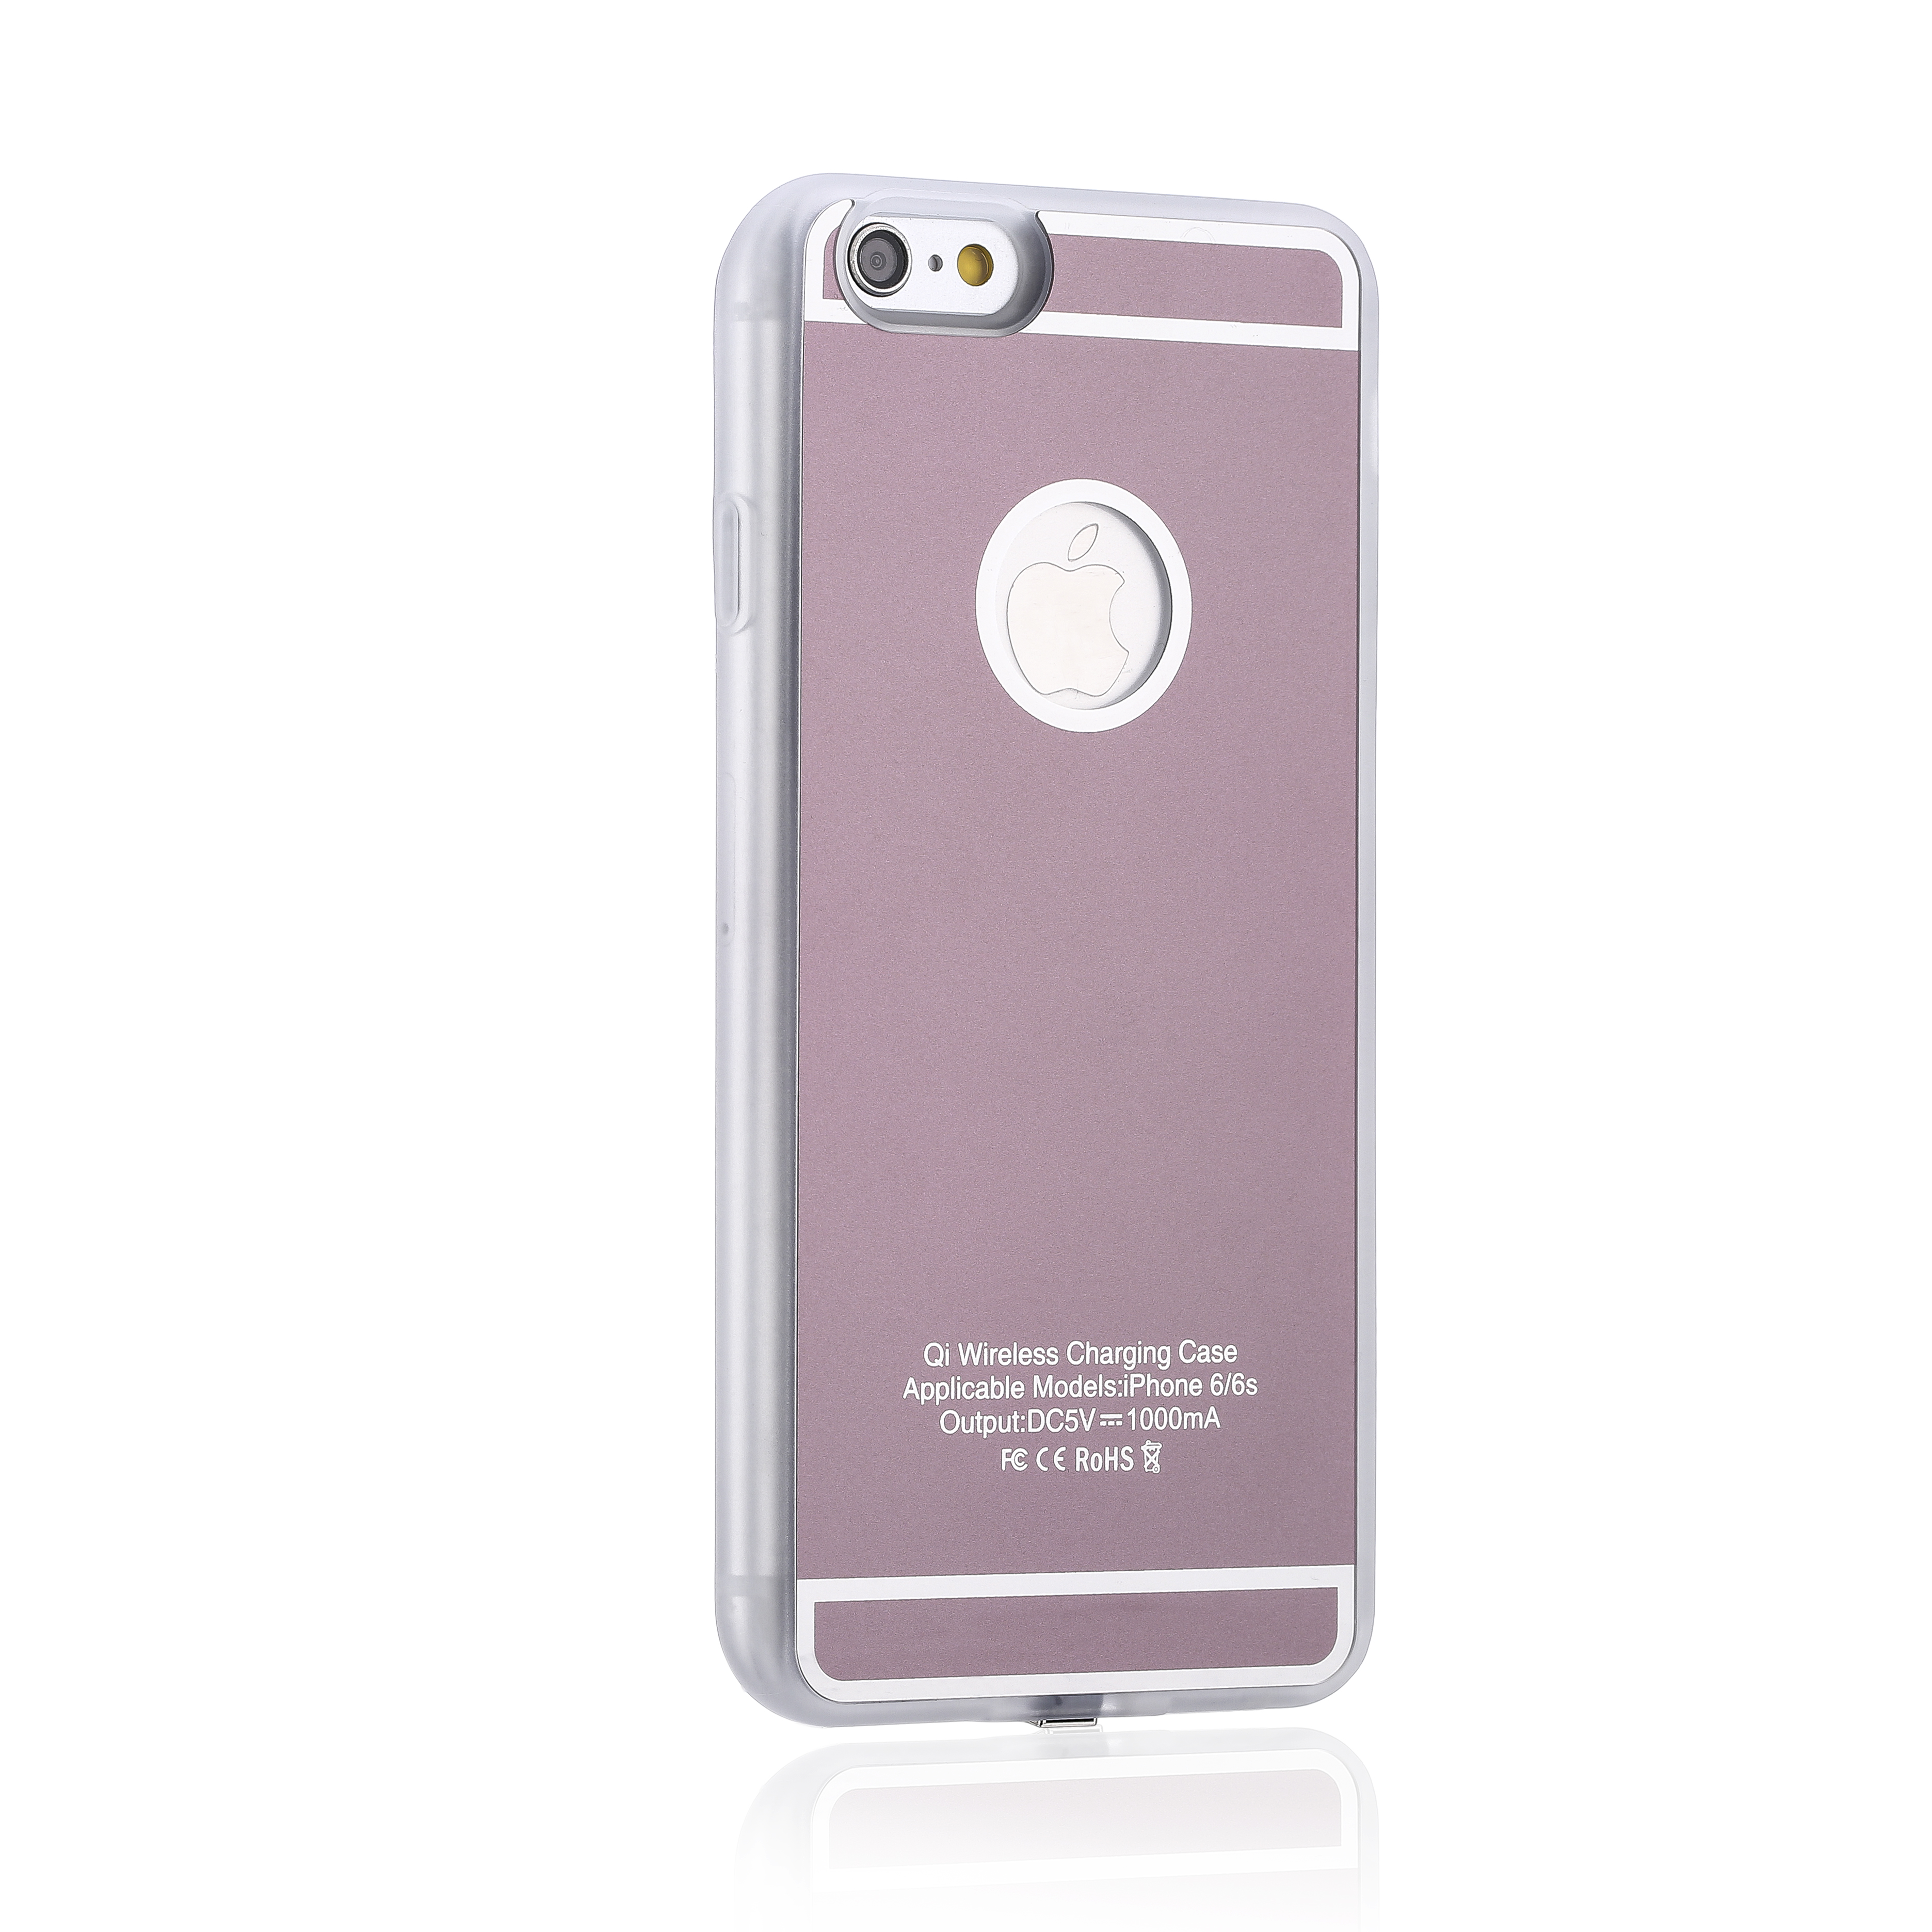 Iphone 6 And Iphone 6s Wireless Charging: QI Wireless Charger Charging Receiver Back Cover Case For